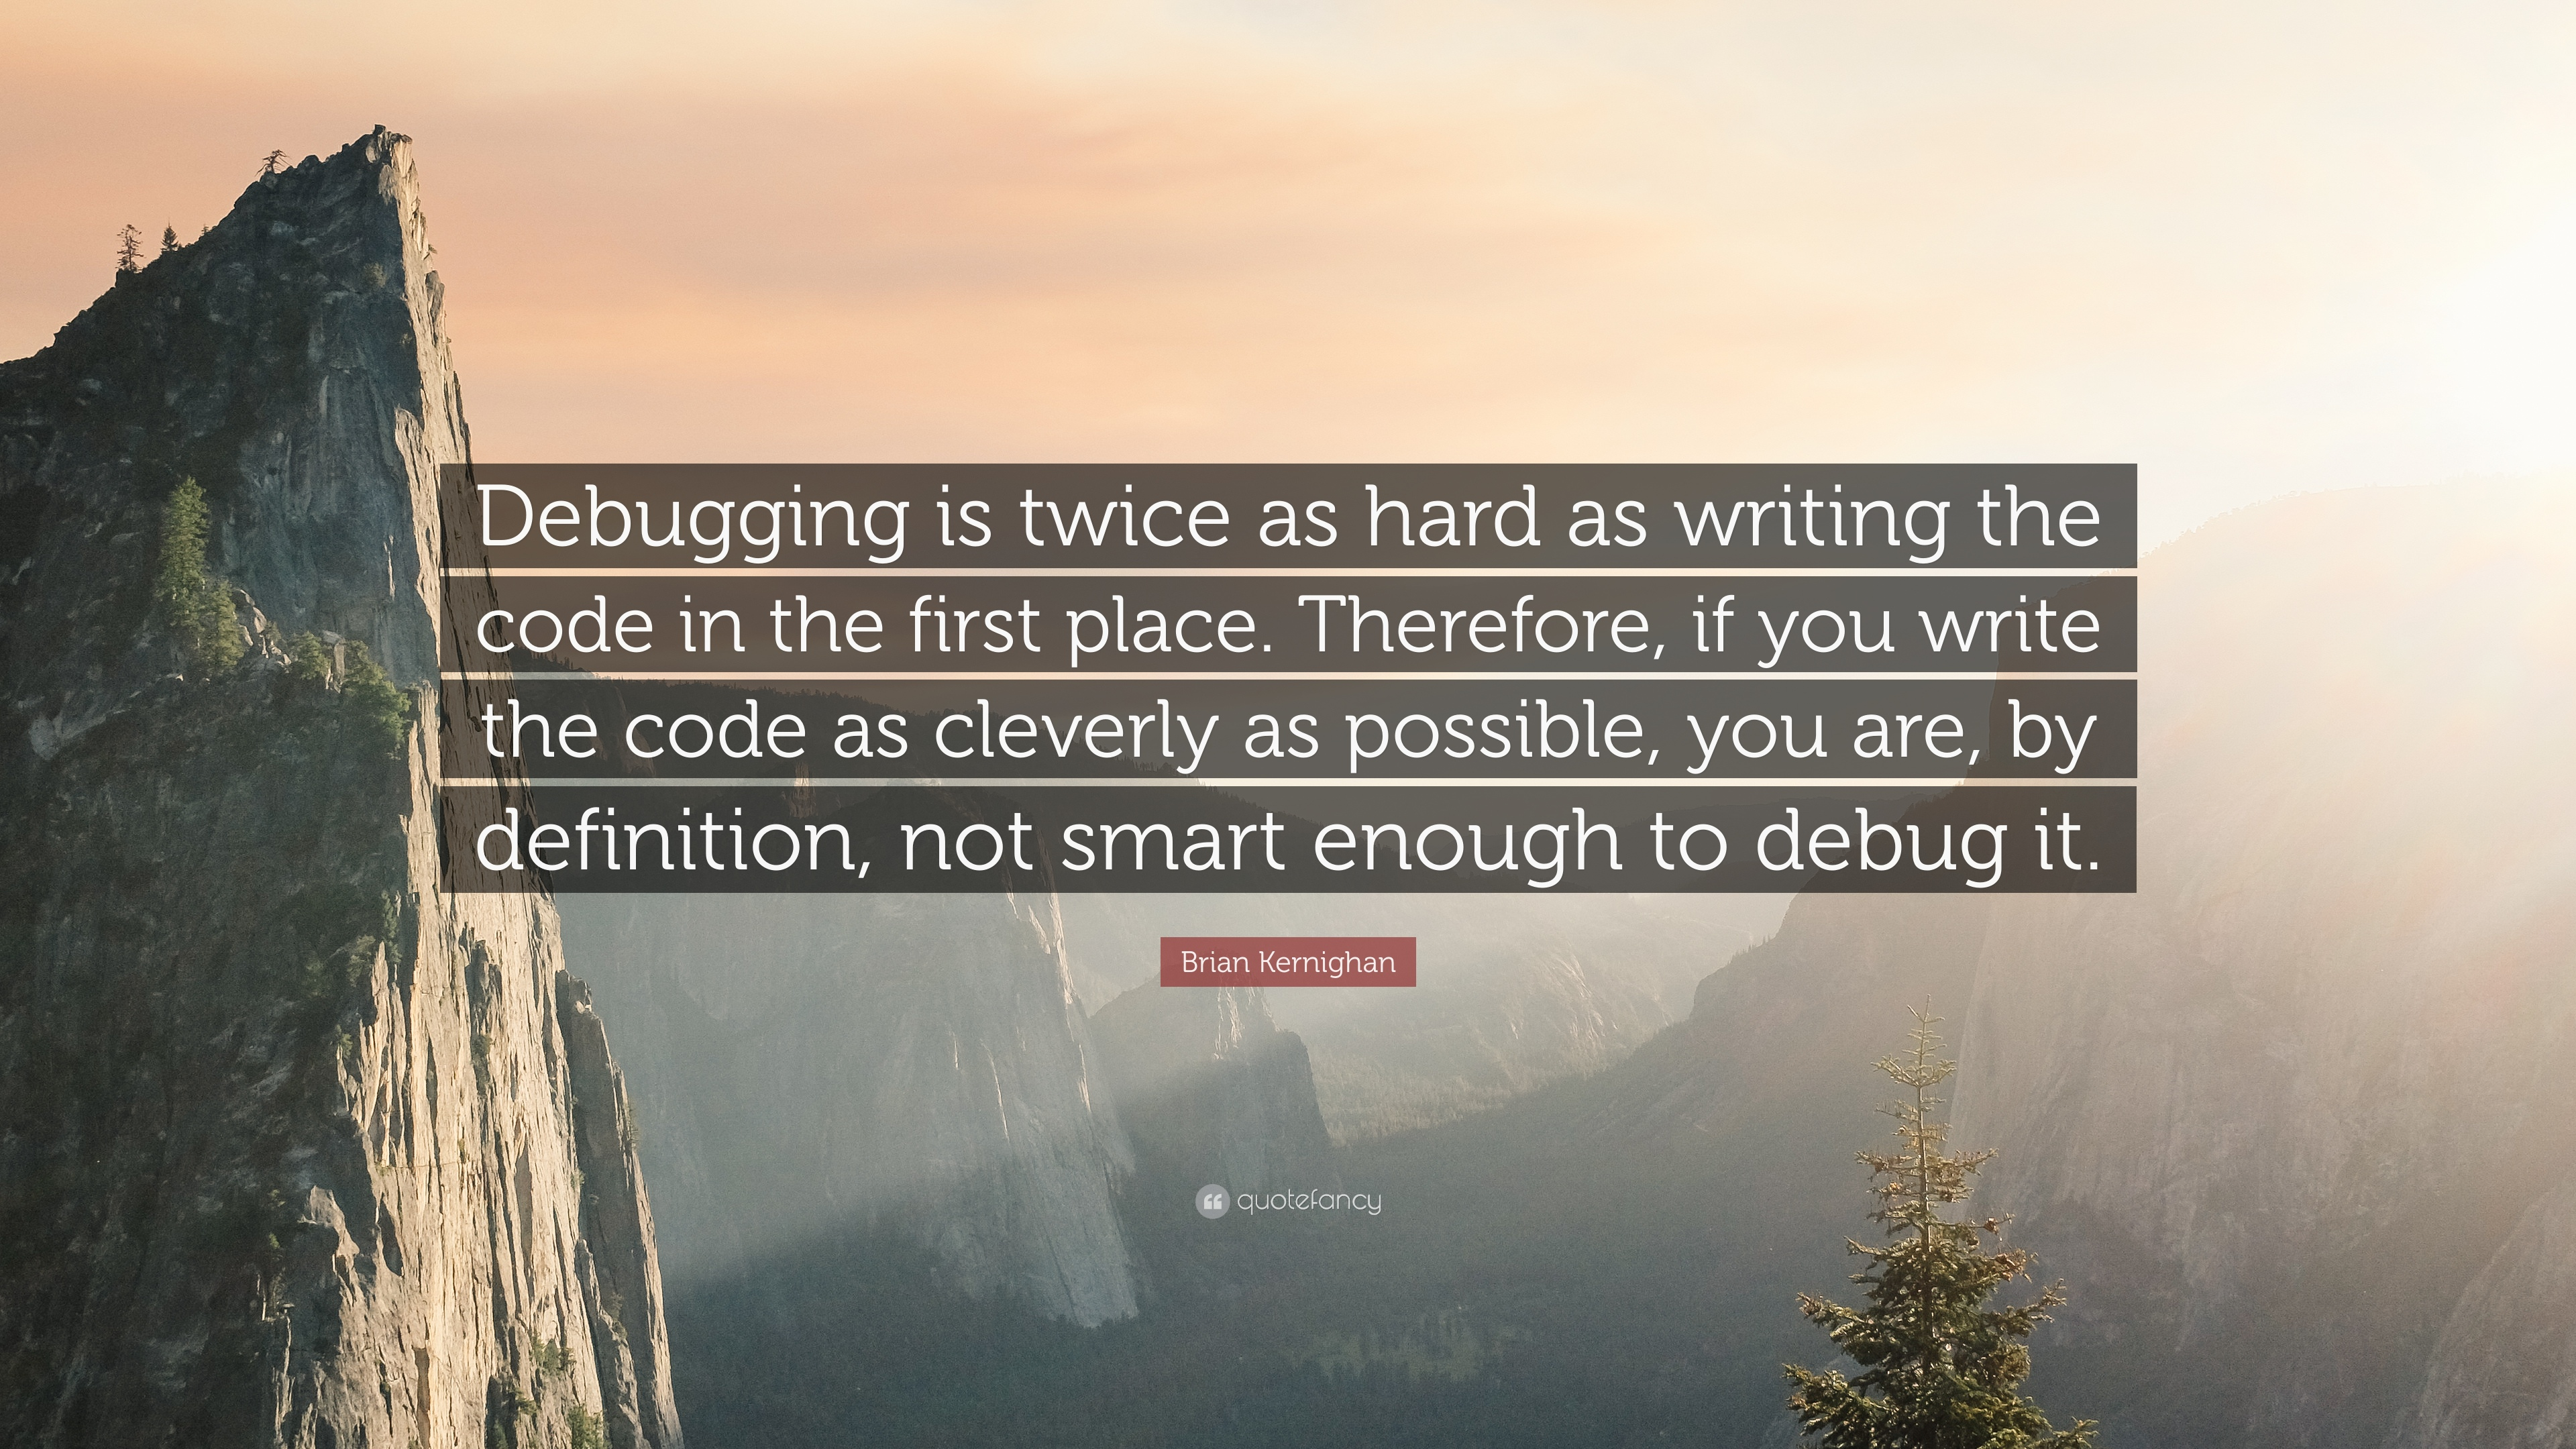 """Debugging is twice as hard as writing the code in the first place. Therefore, if you write the code as cleverly as possible, you are, by definition, not smart enough to debug it."""